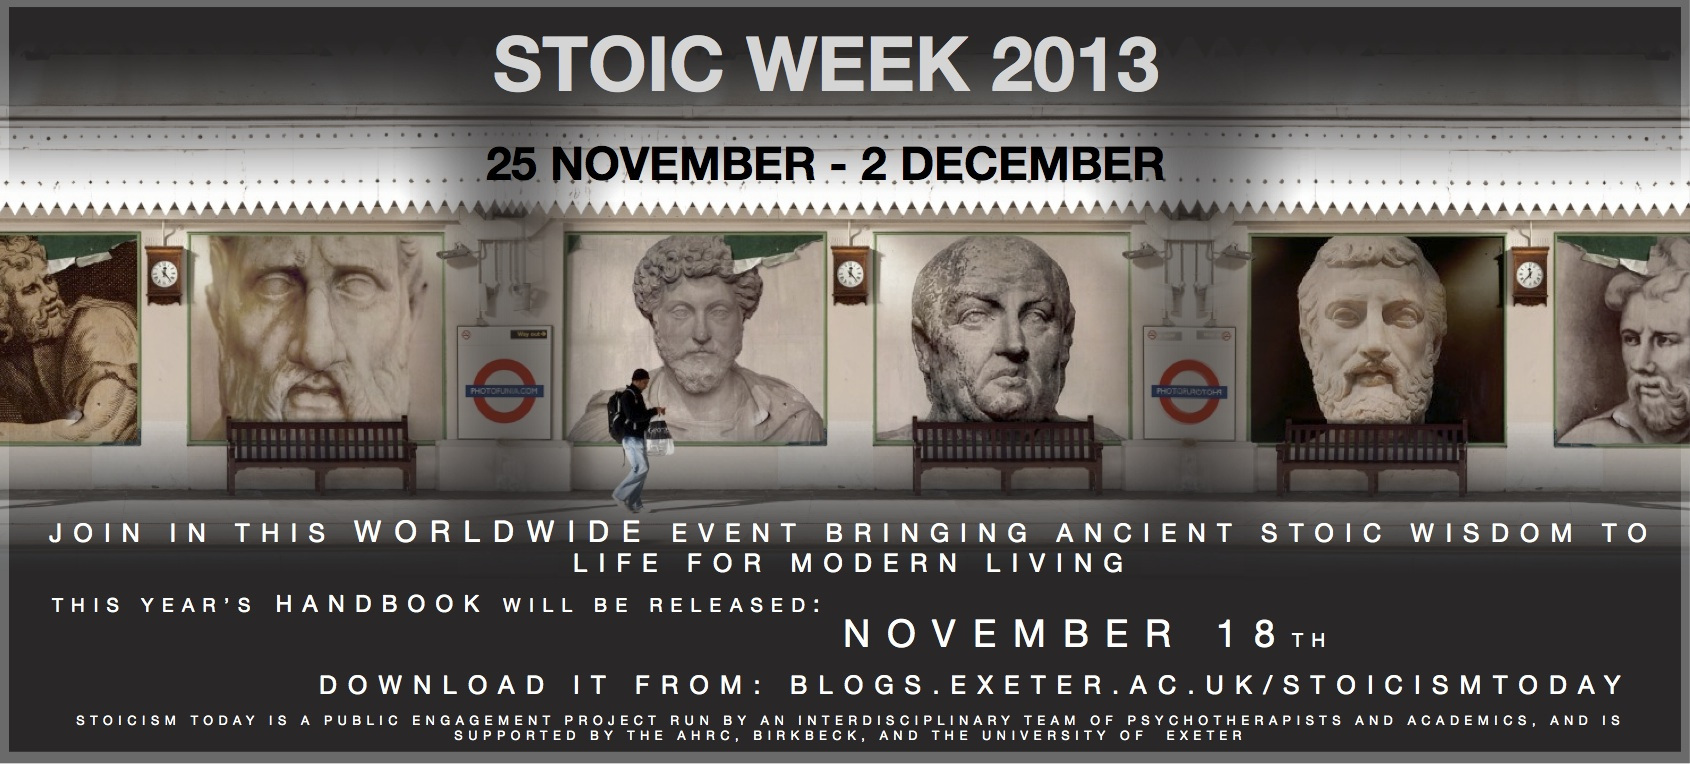 Live like a Stoic for one week and build resilience for life.